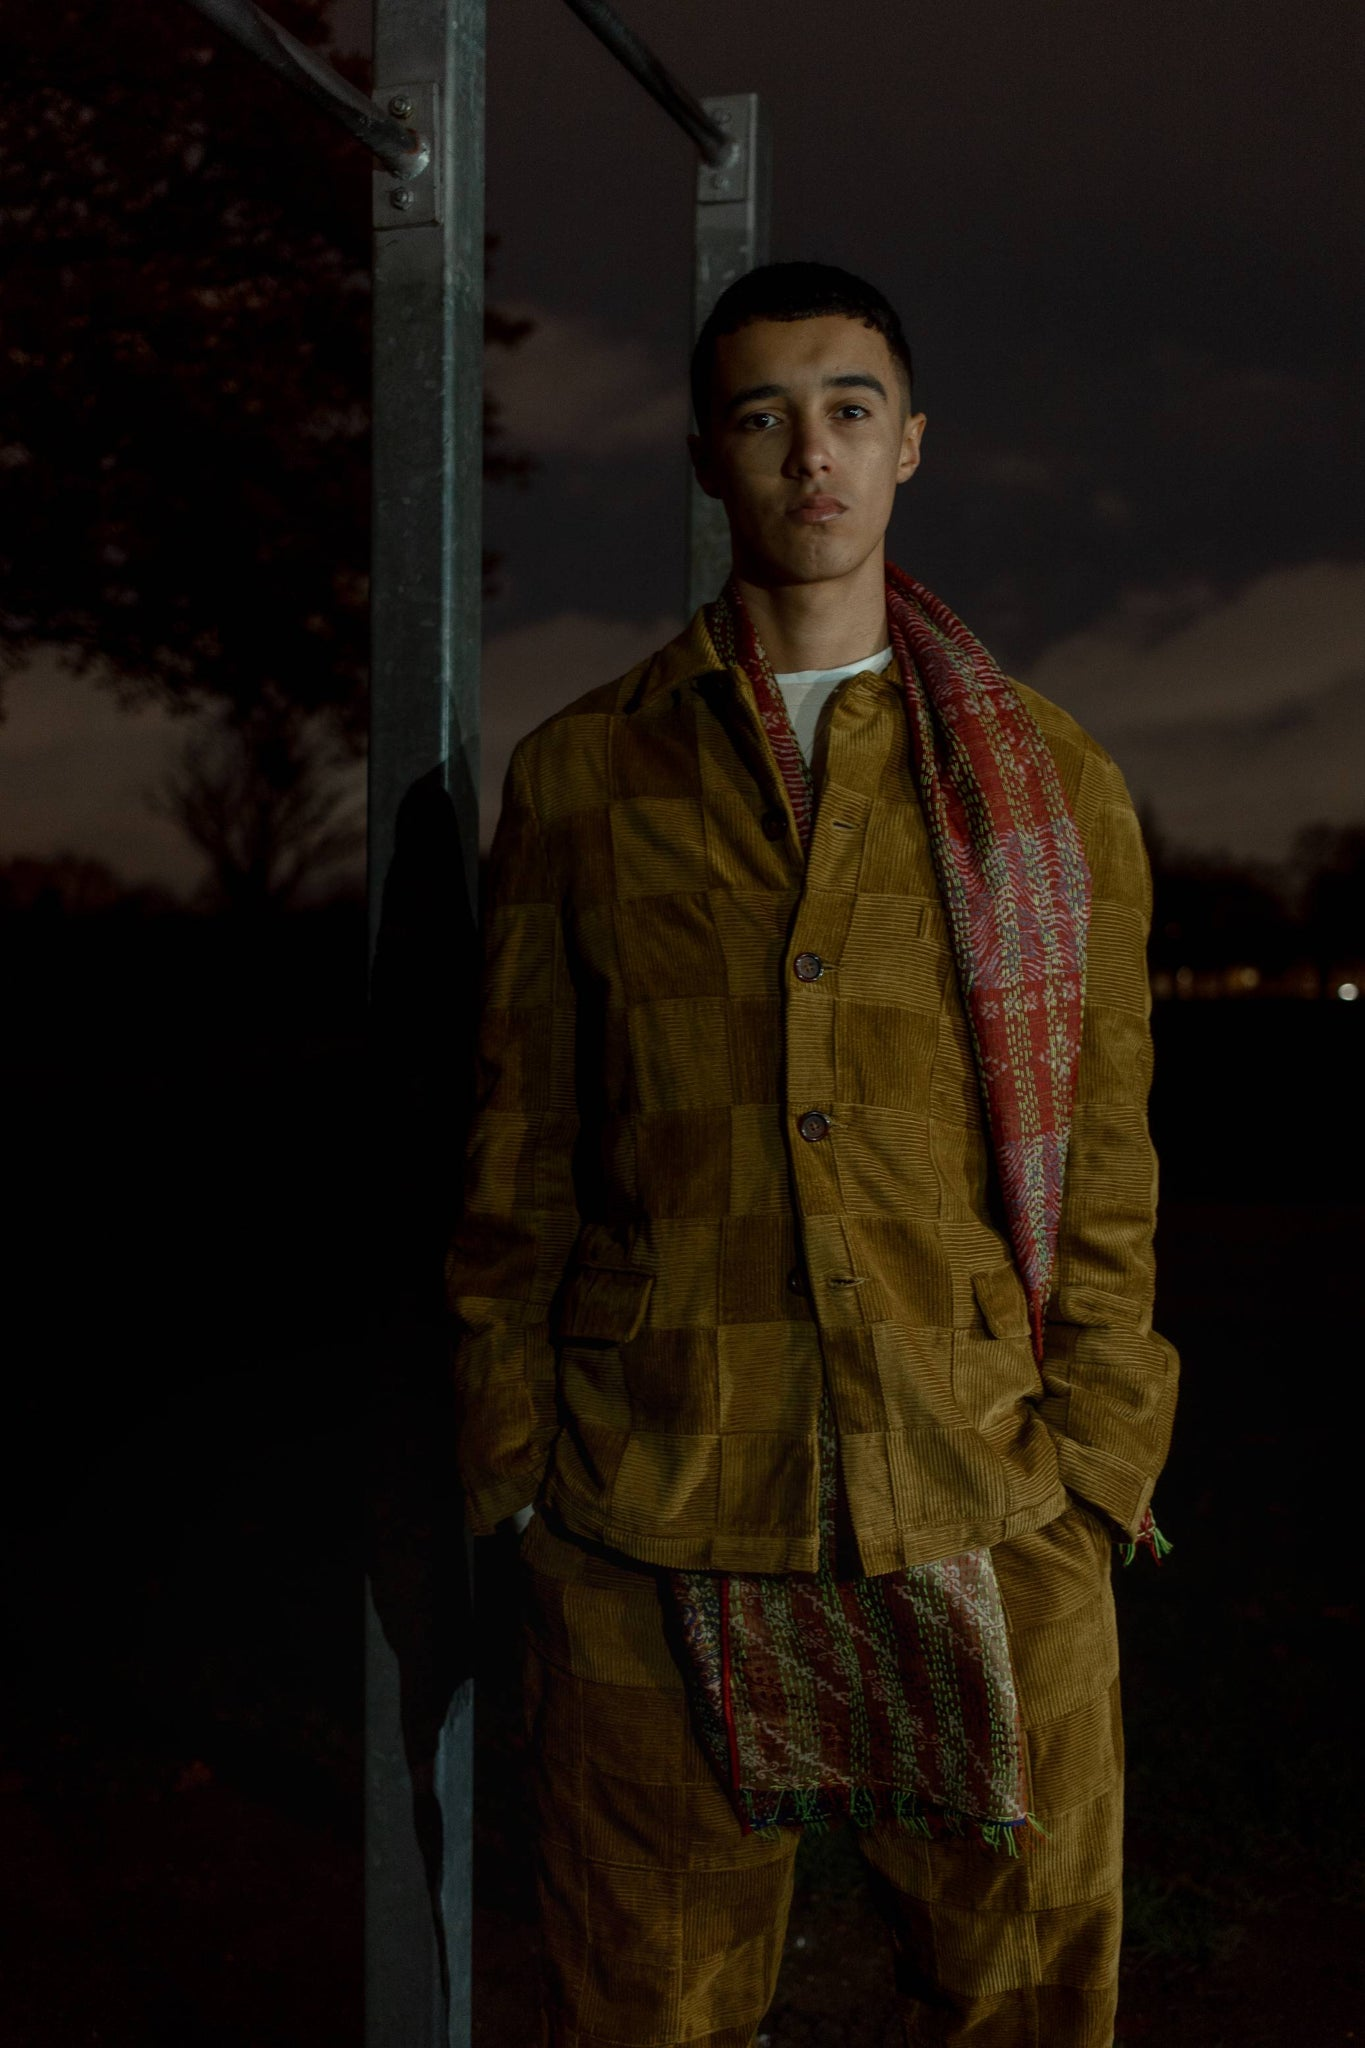 502 Bad Gateway Magazine, Universal Works Mustard patchwork cord jacket, mustard patchwork cord pants, red embroidered  scarf,